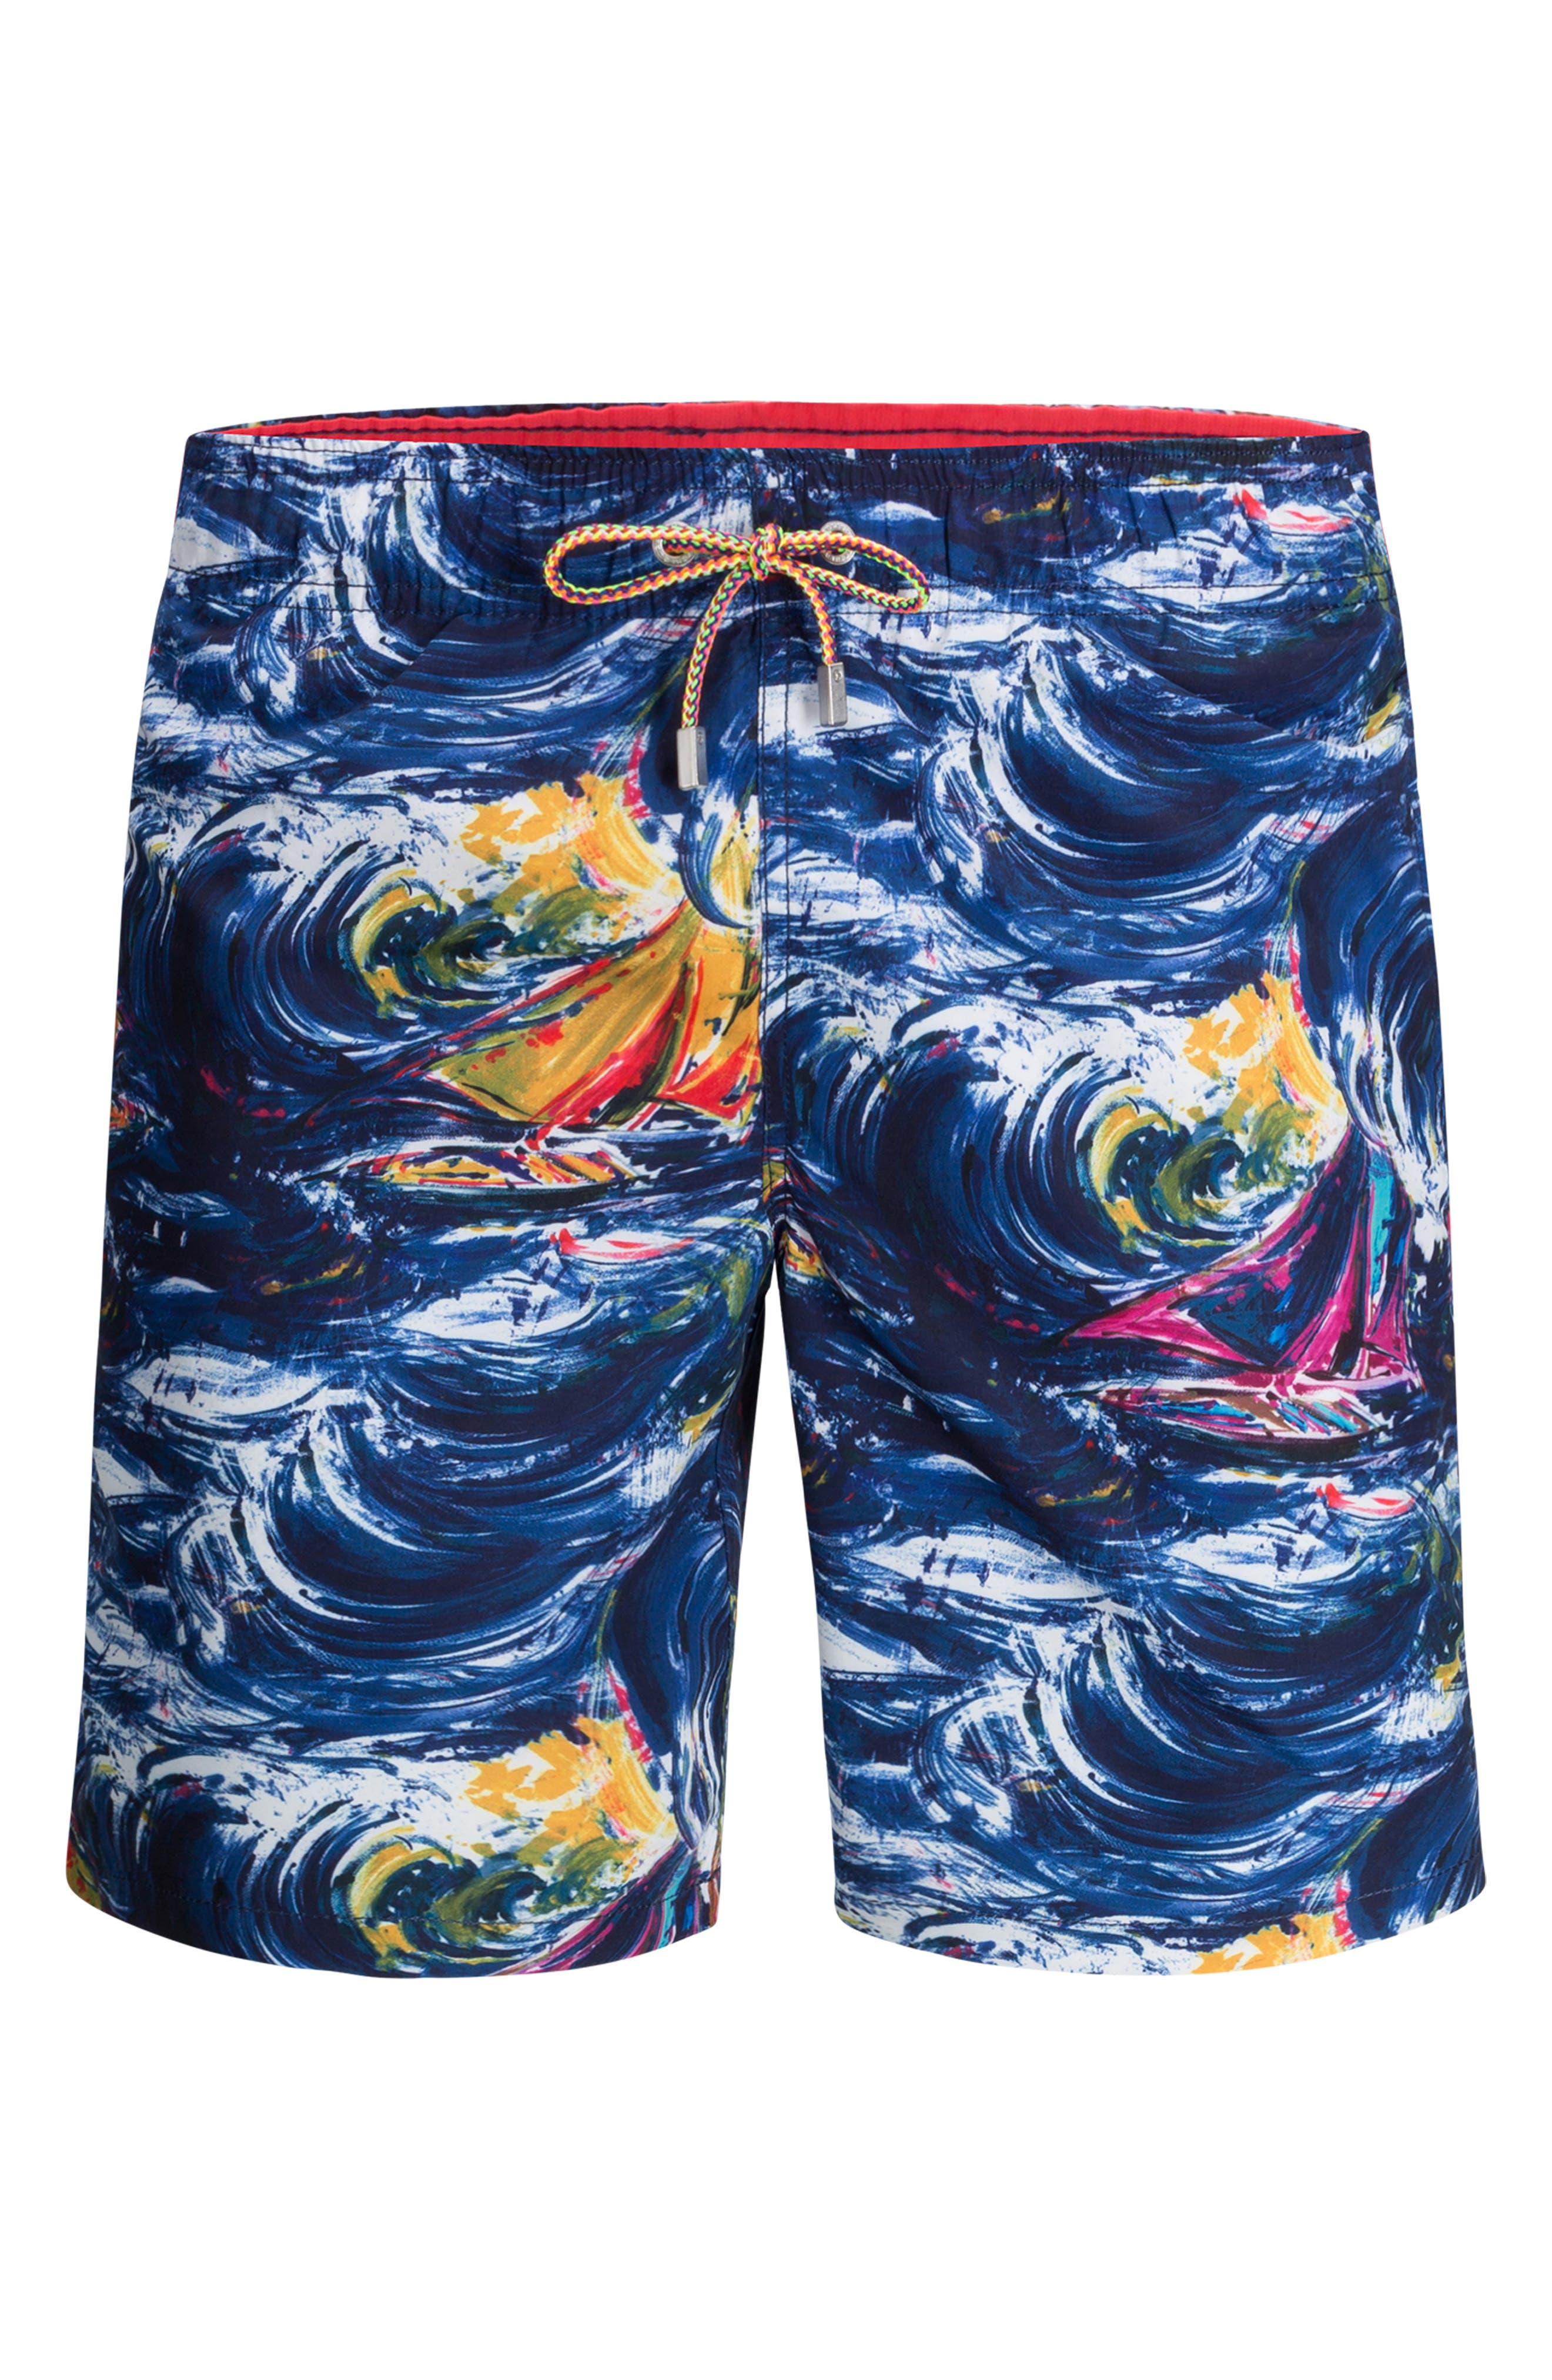 Waves swirl over sleek swim trunks that have a comfortable adjustable waist and pockets to stash your stuff. Style Name: Bugatchi Novelty Print Swim Trunks. Style Number: 6185971. Available in stores.